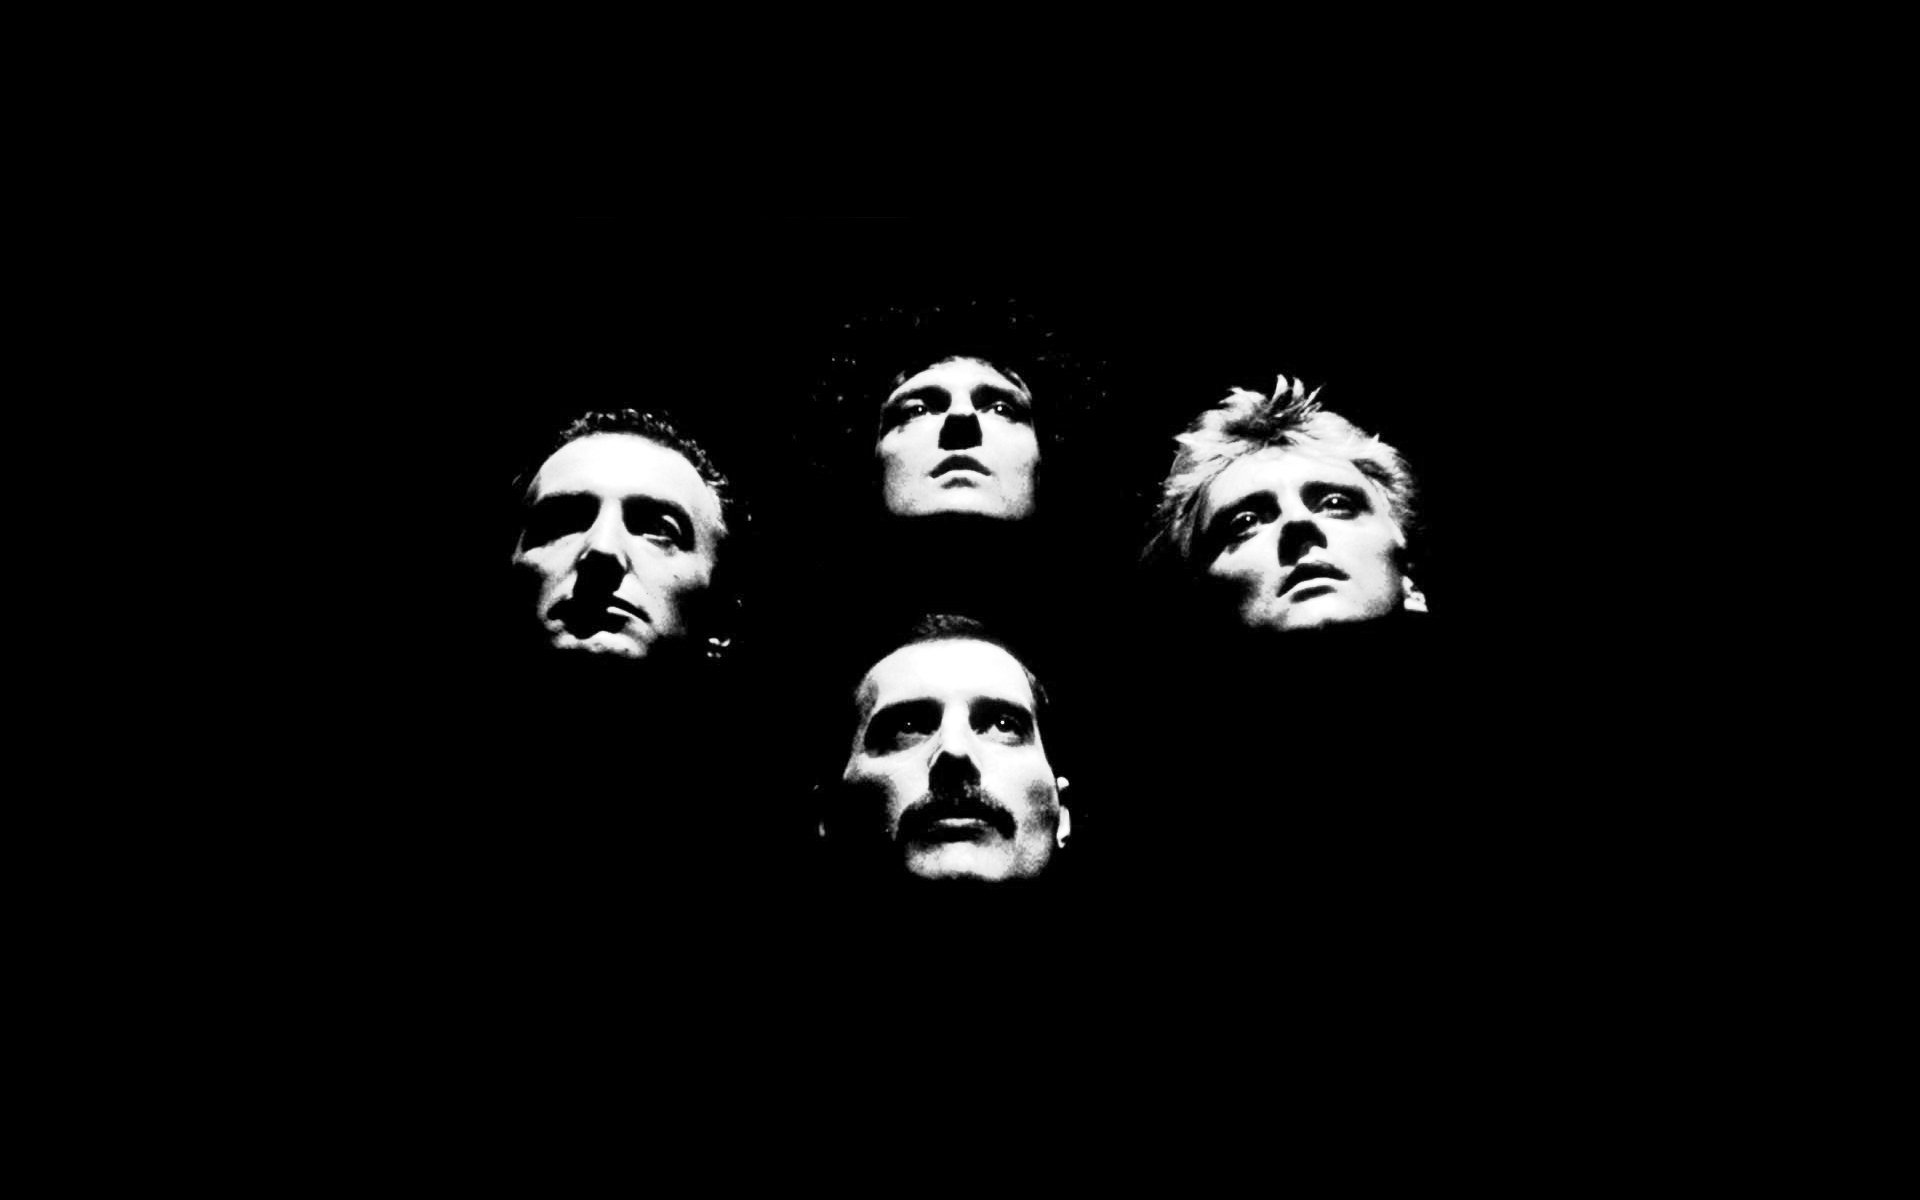 Queen Band Wallpaper HD